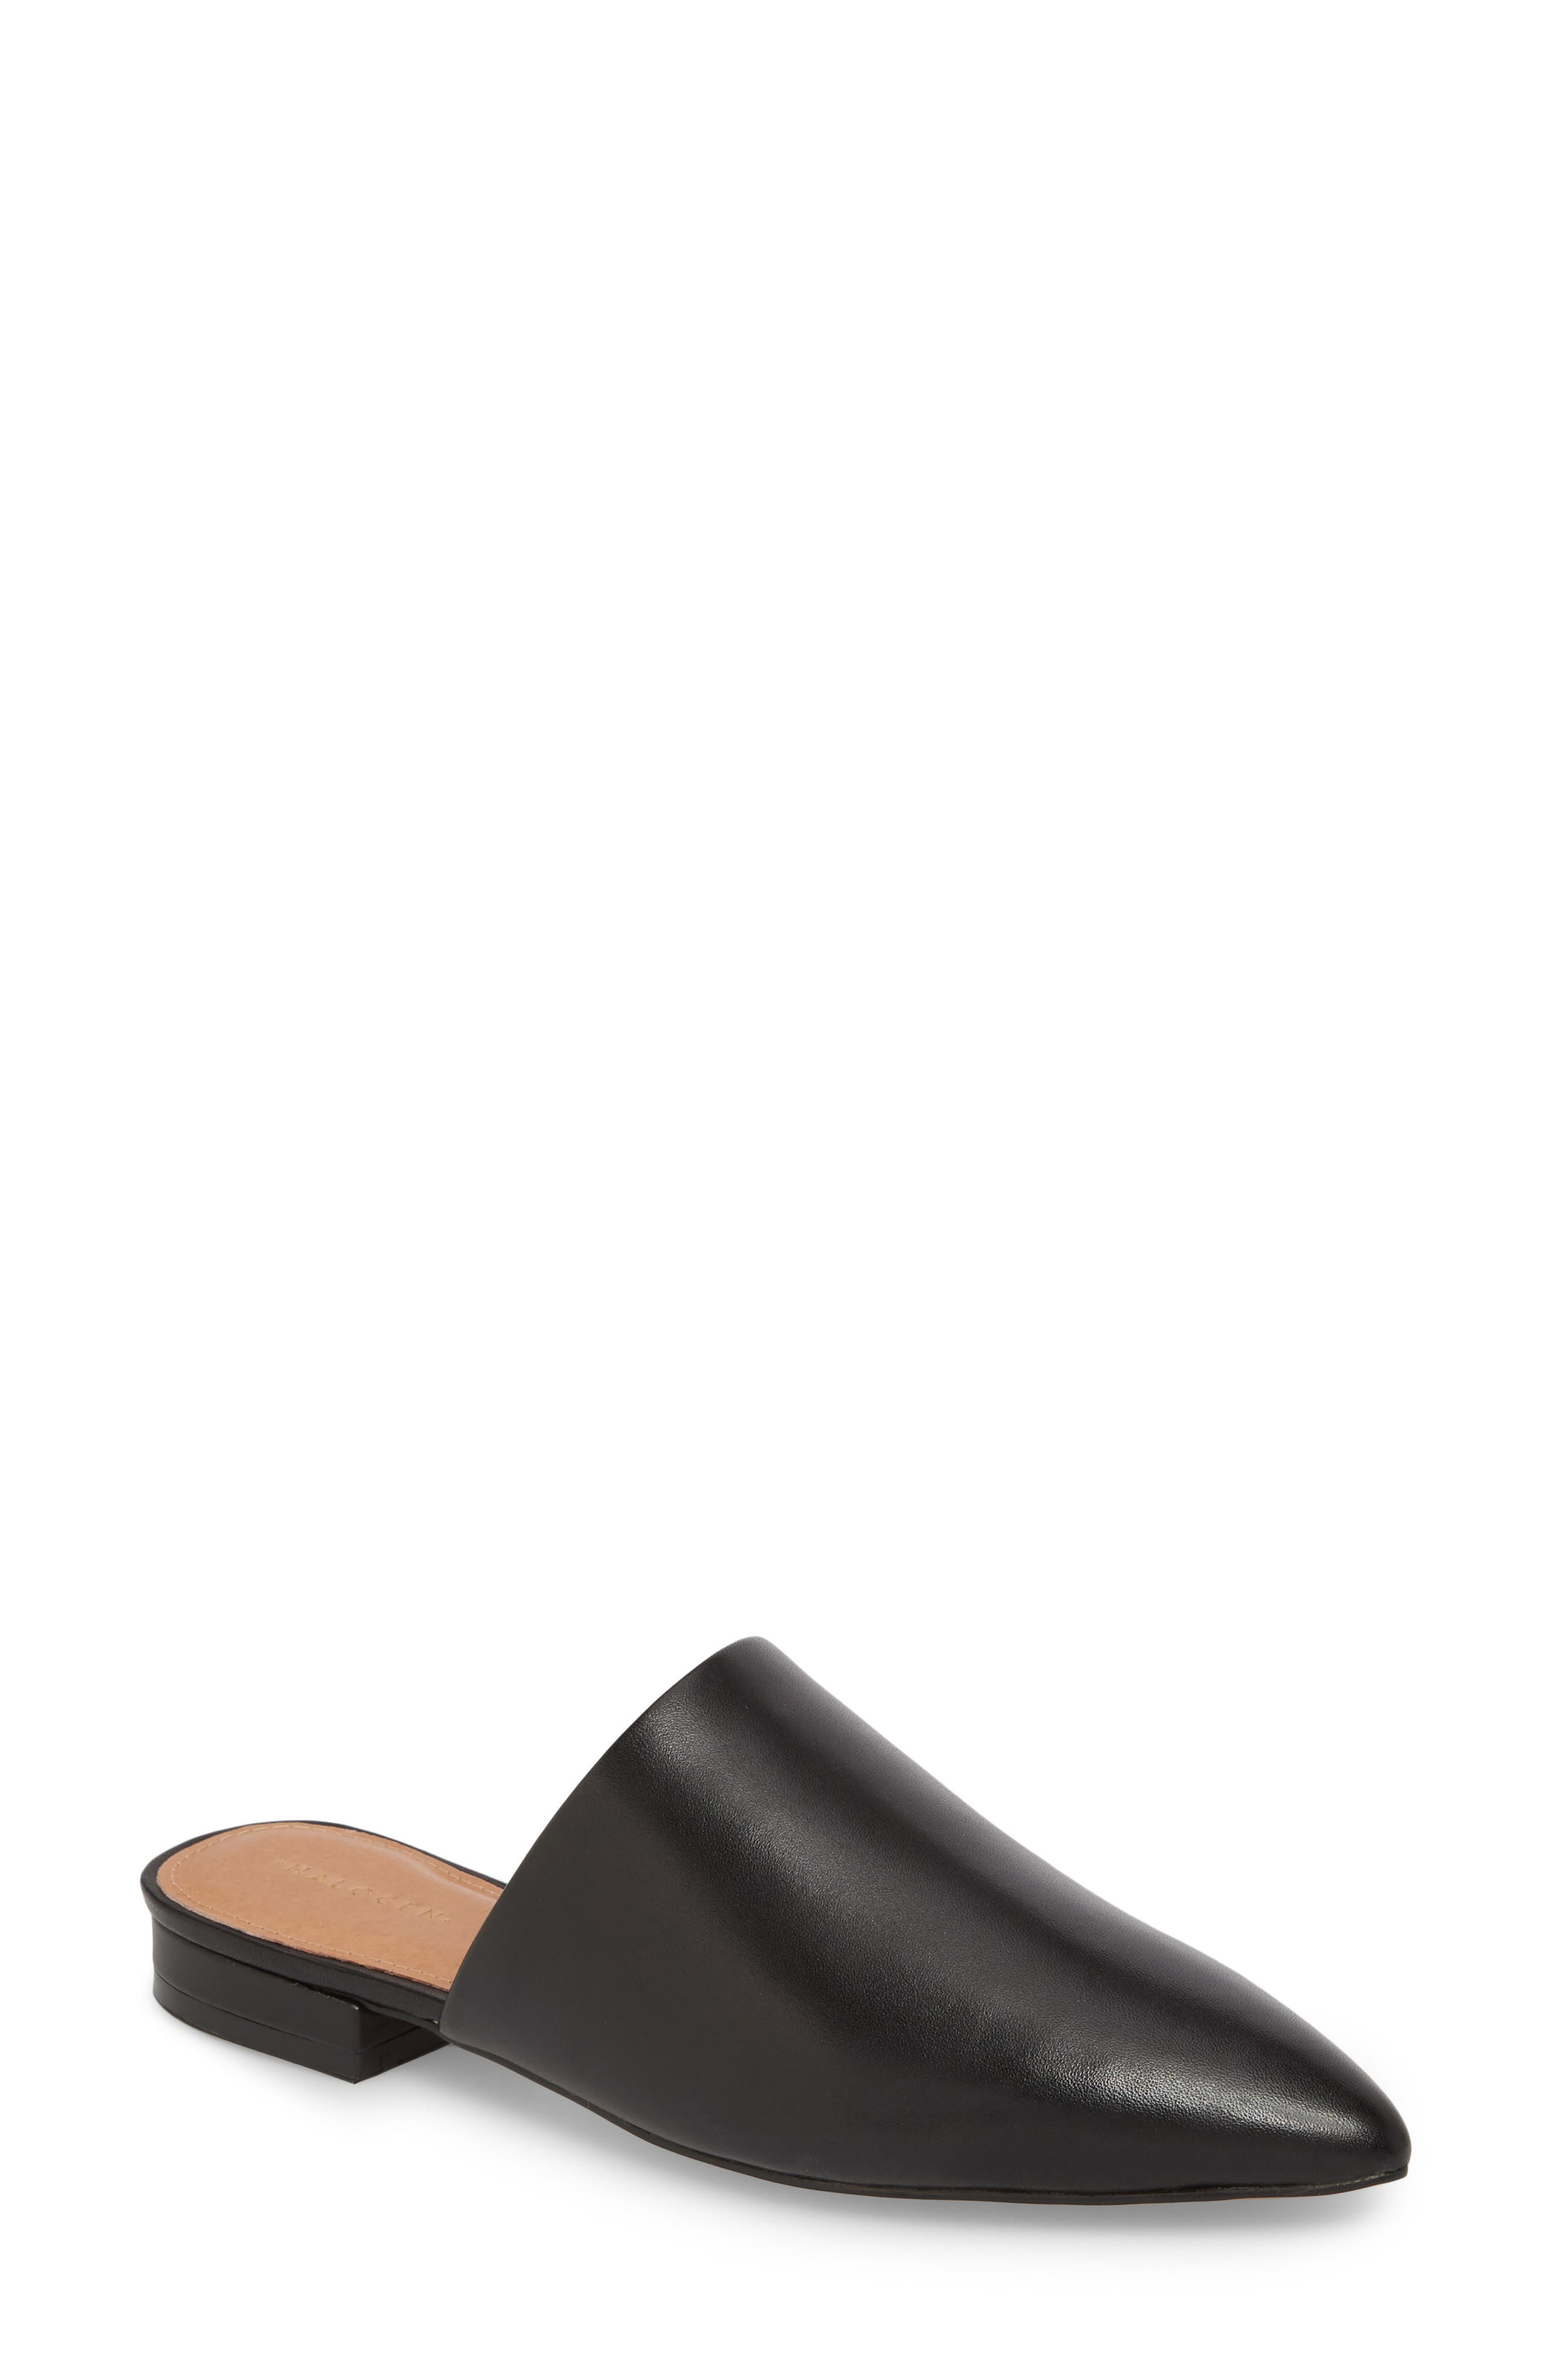 Elly Mule,                             Main thumbnail 1, color,                             BLACK LEATHER